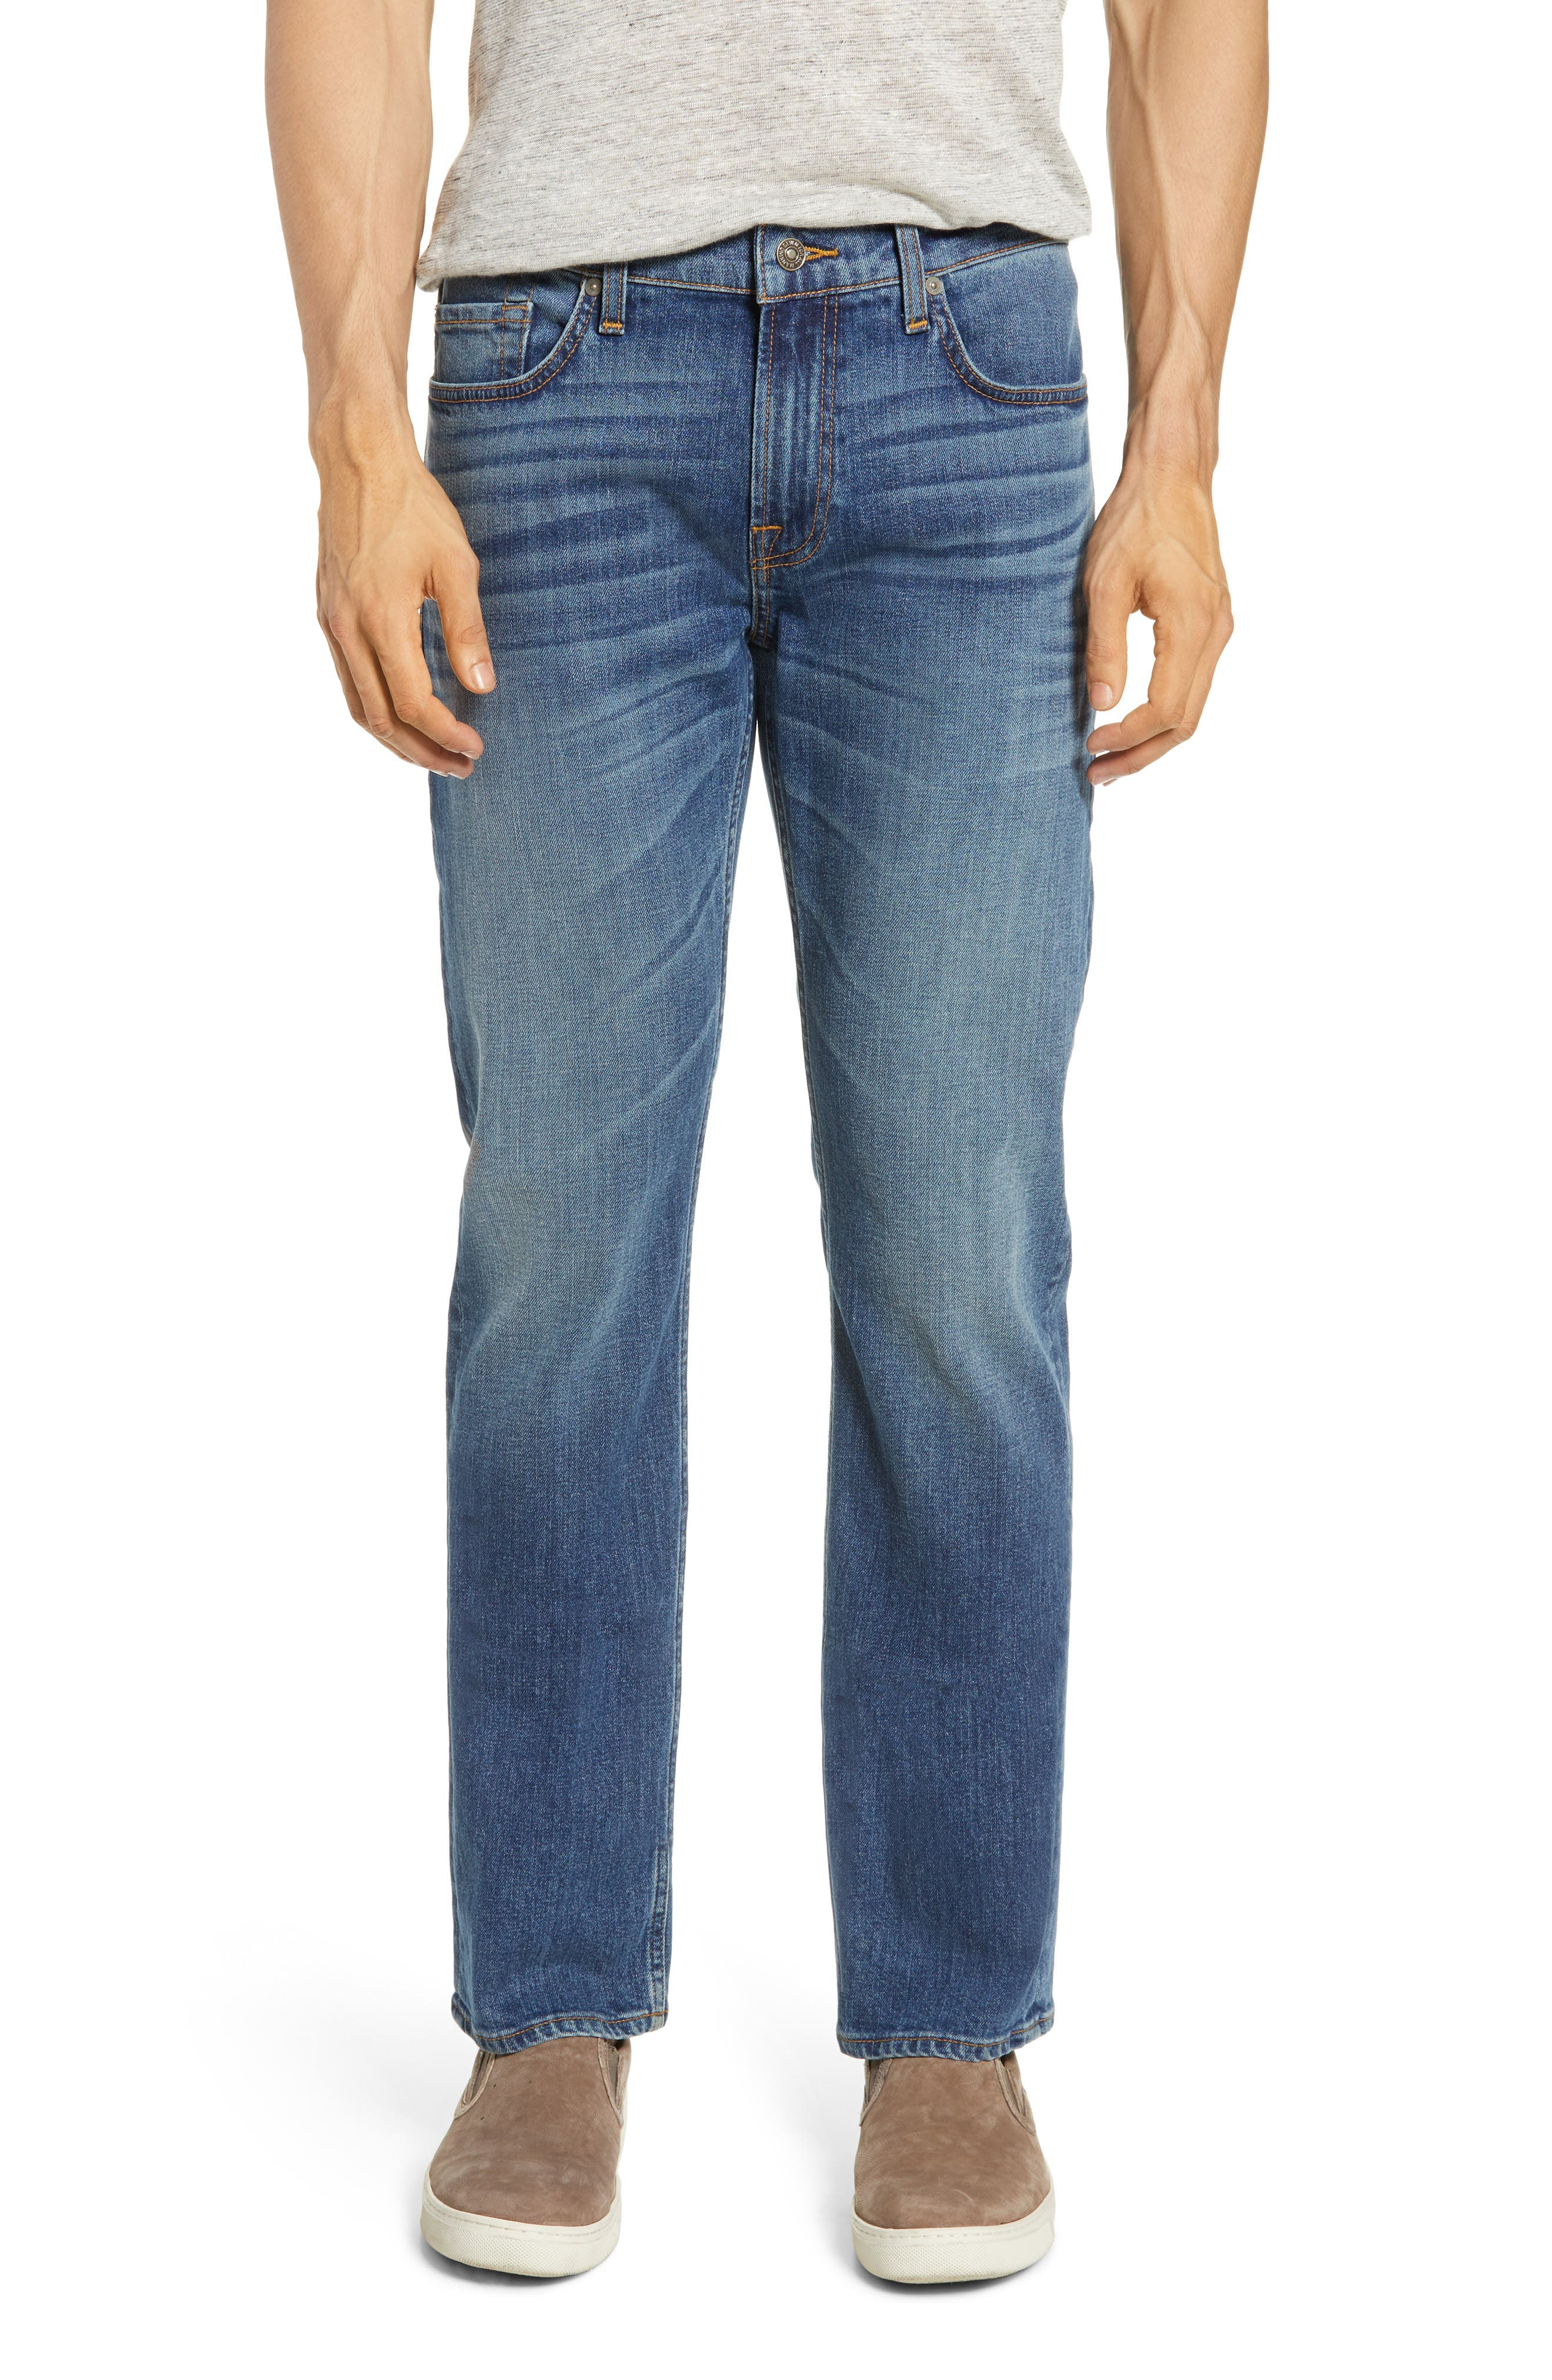 7 FOR ALL MANKIND<SUP>®</SUP>, Slimmy Slim Fit Jeans, Main thumbnail 1, color, PRPH